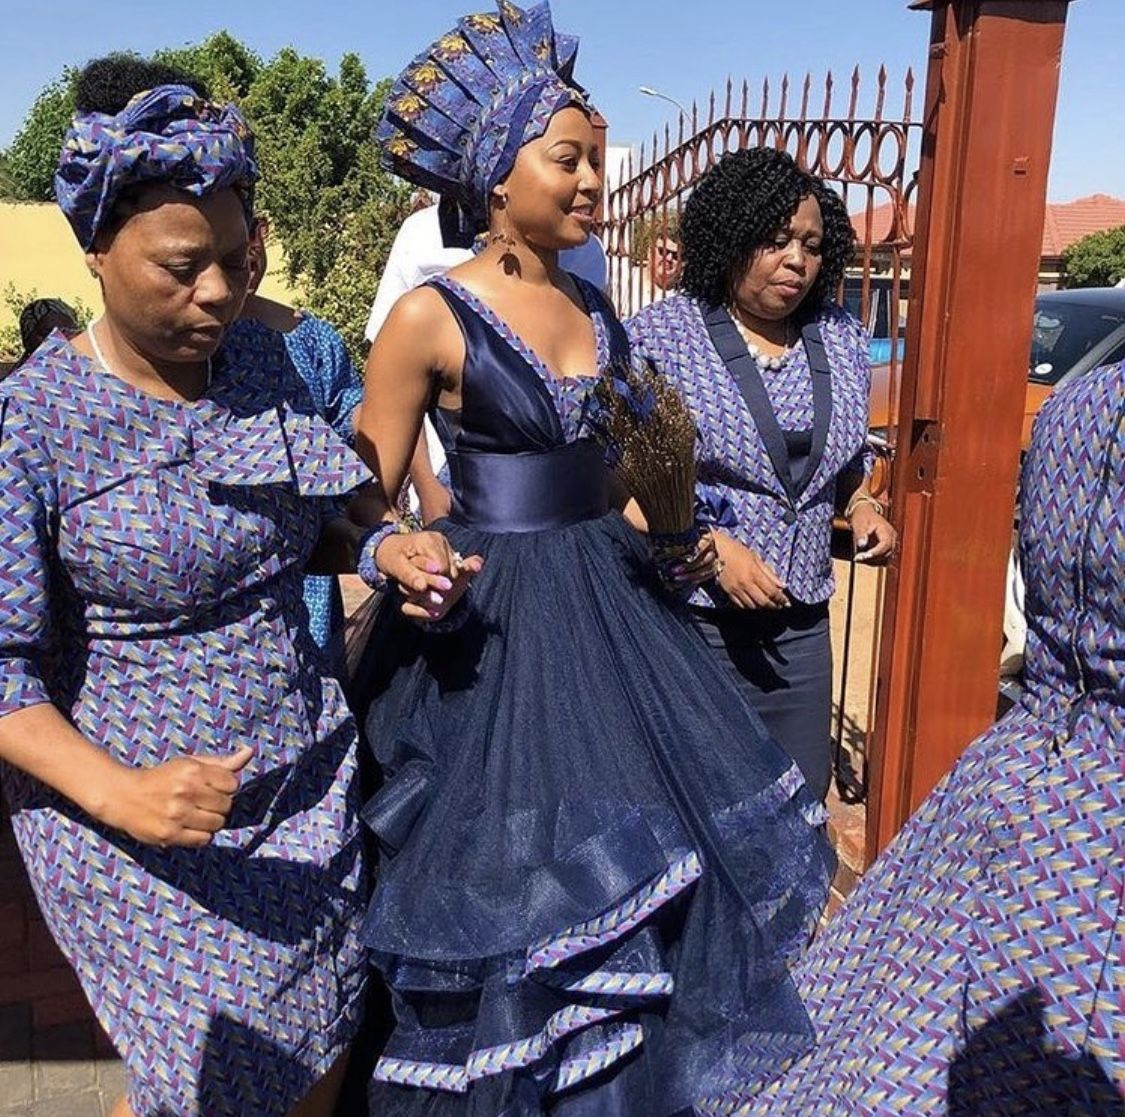 Venda Traditional Modern Dresses: Sunika Traditional African Clothes